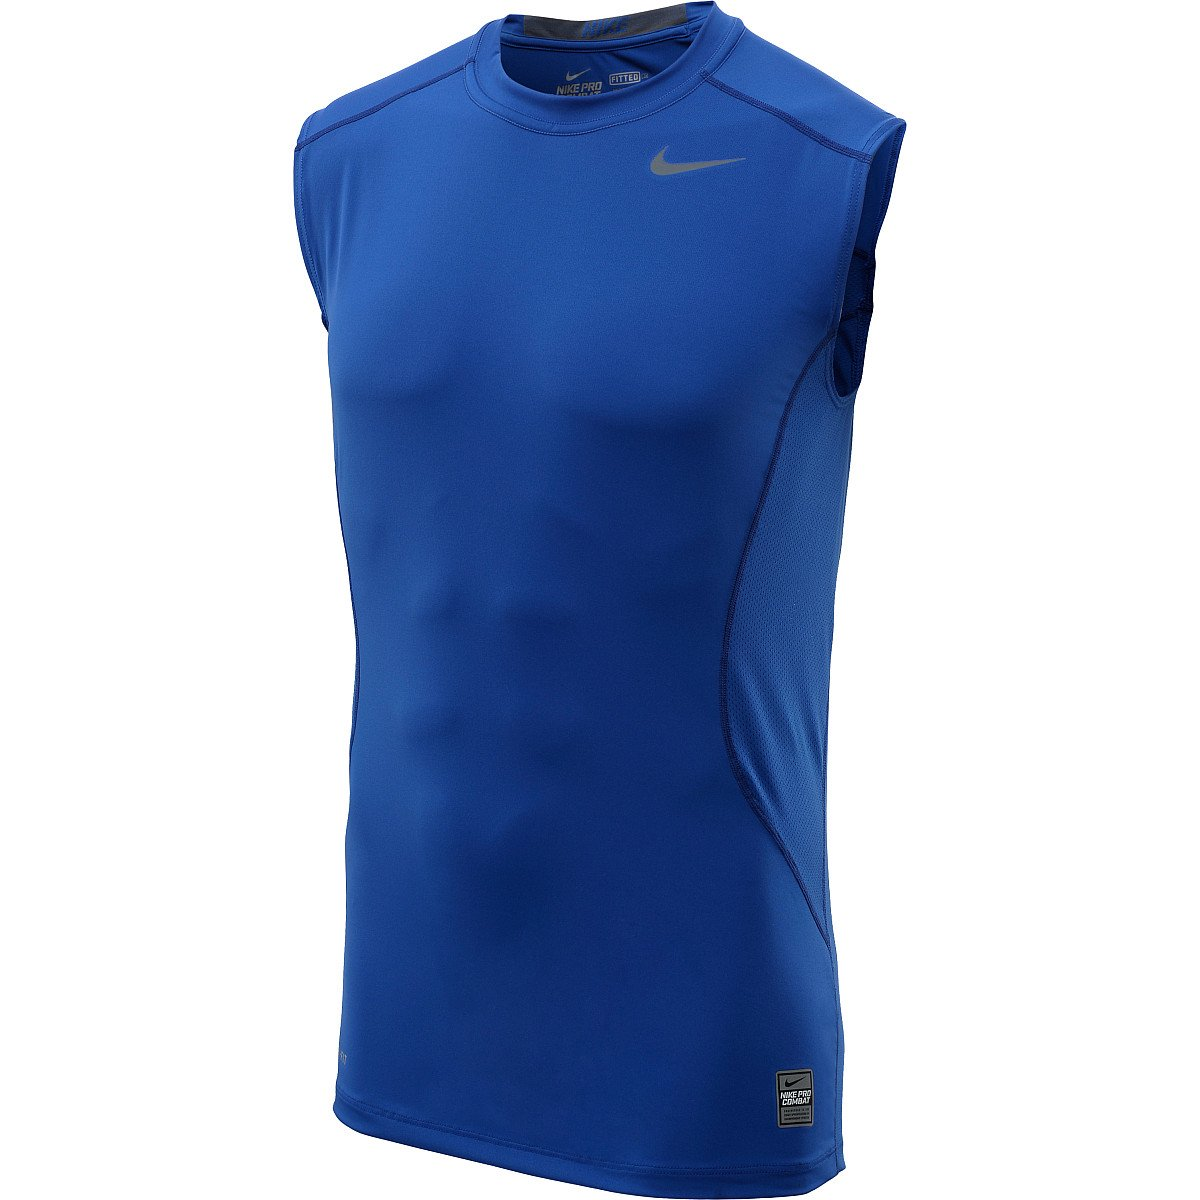 eb50aabb Nike Core Fitted Sleeveless Top 2.0 Mens Style: 449786-495 Size: XXL:  Amazon.ca: Clothing & Accessories